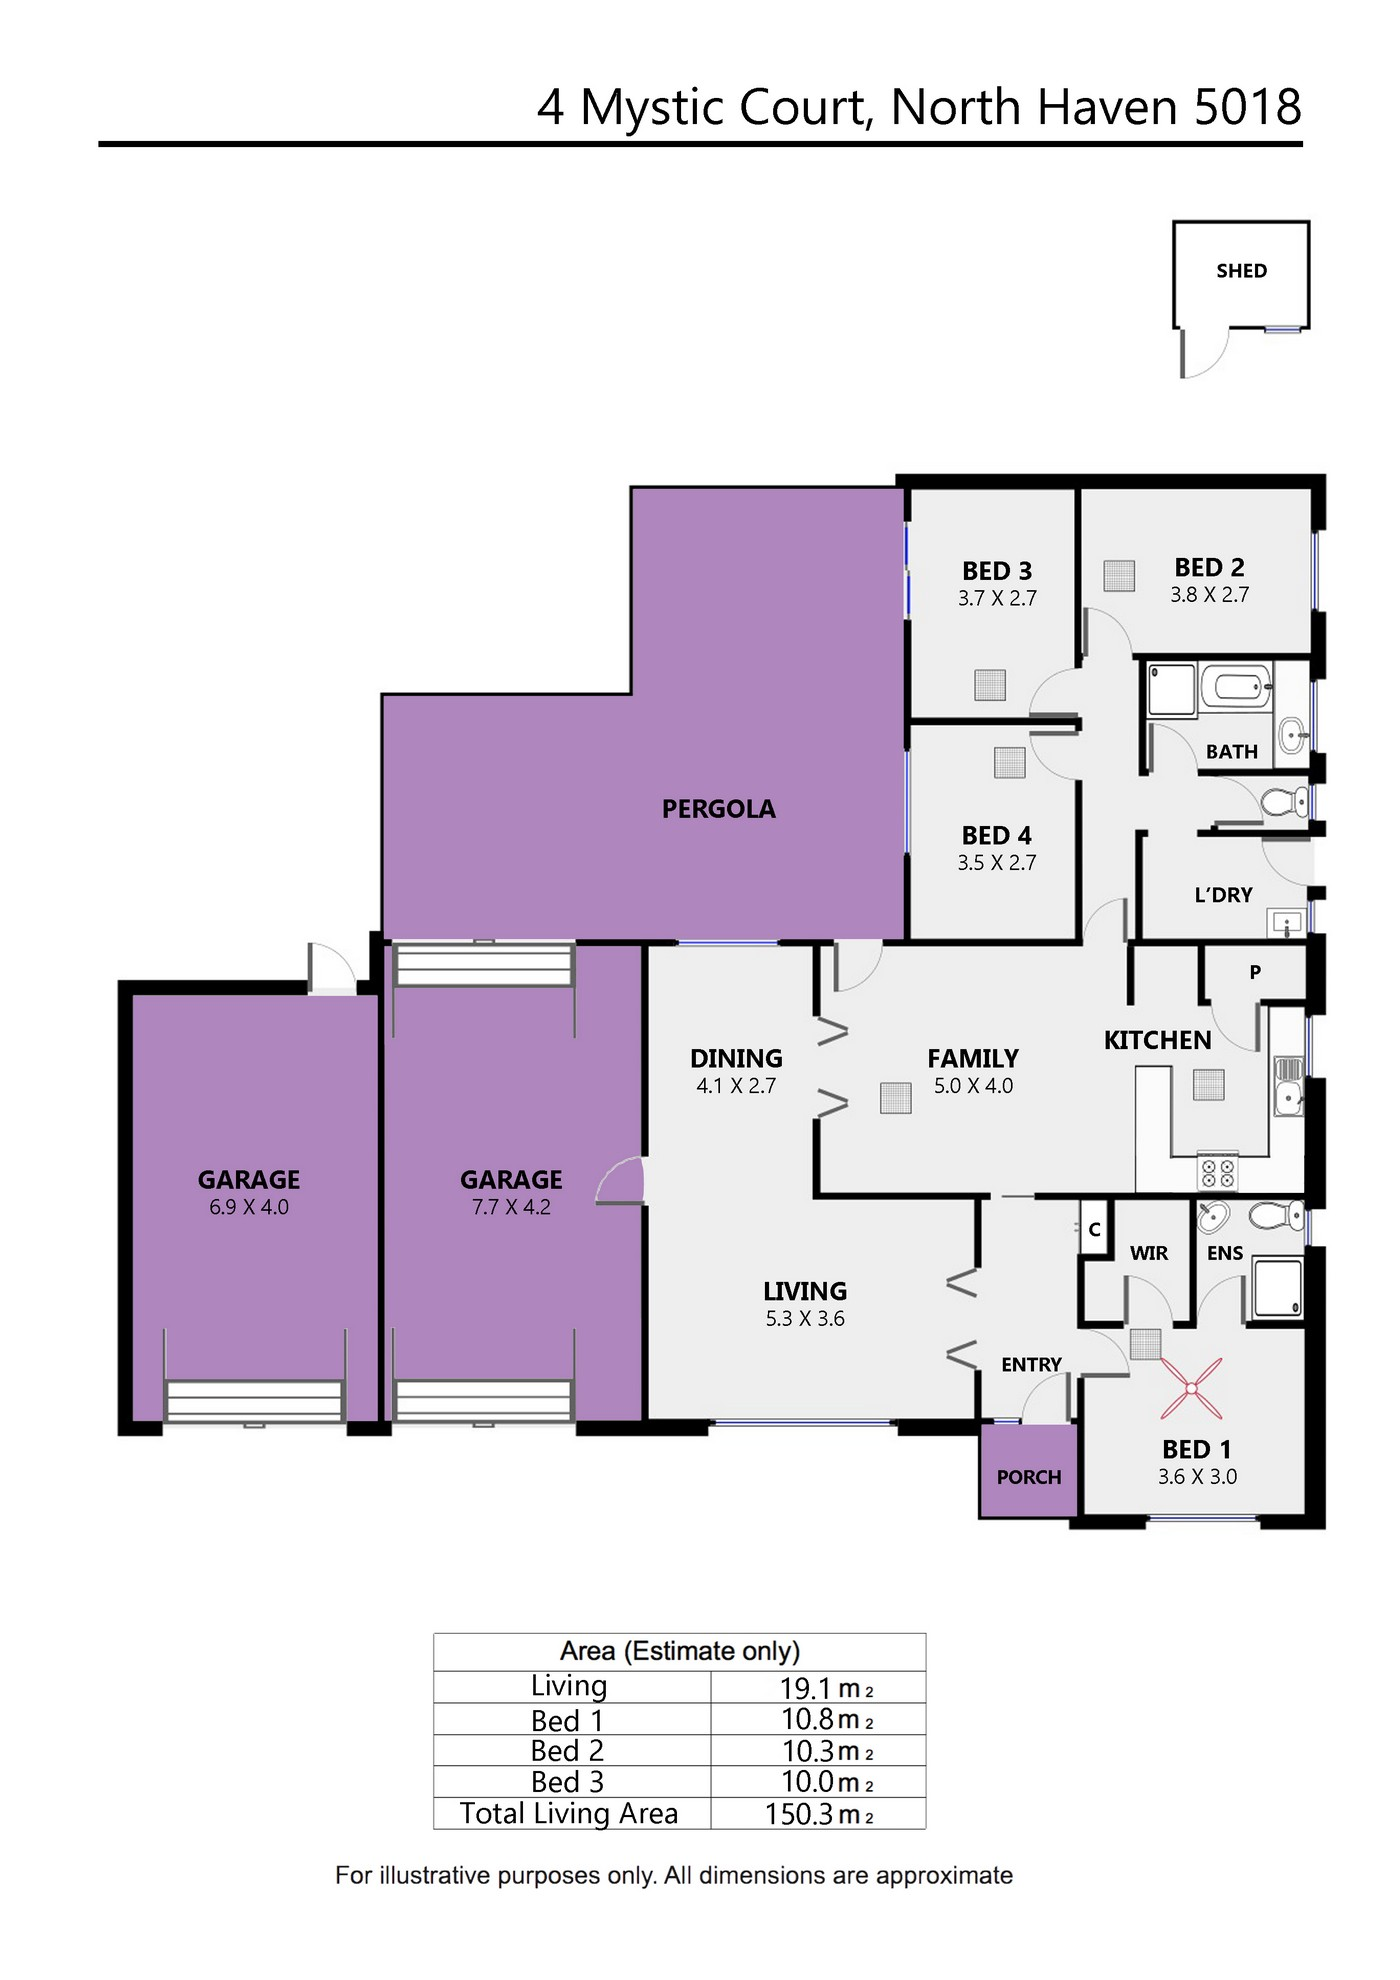 4 Mystic Court, North Haven - Floor Plan